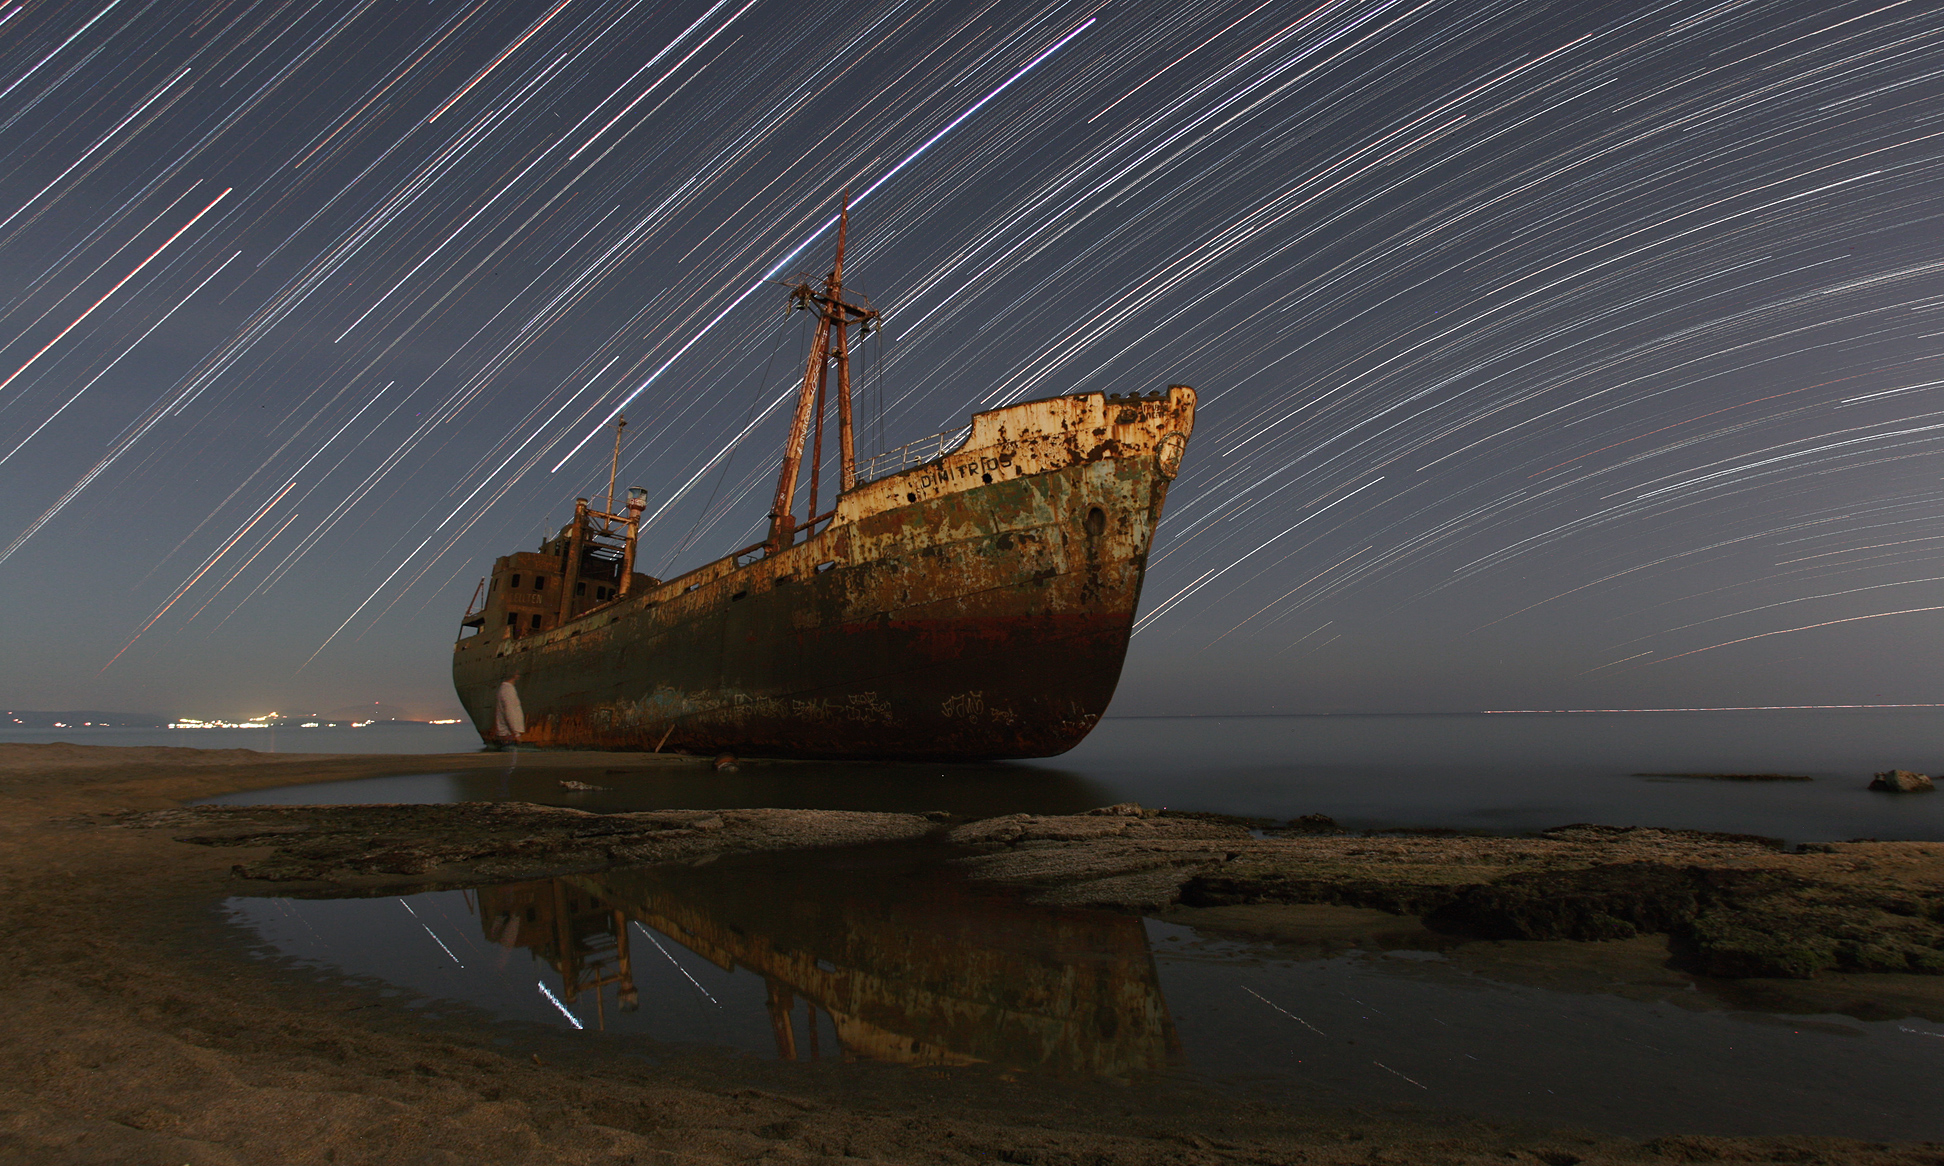 Star Trails and the Captain's Ghost Credit & Copyright: Chris Kotsiopoulos (GreekSky)